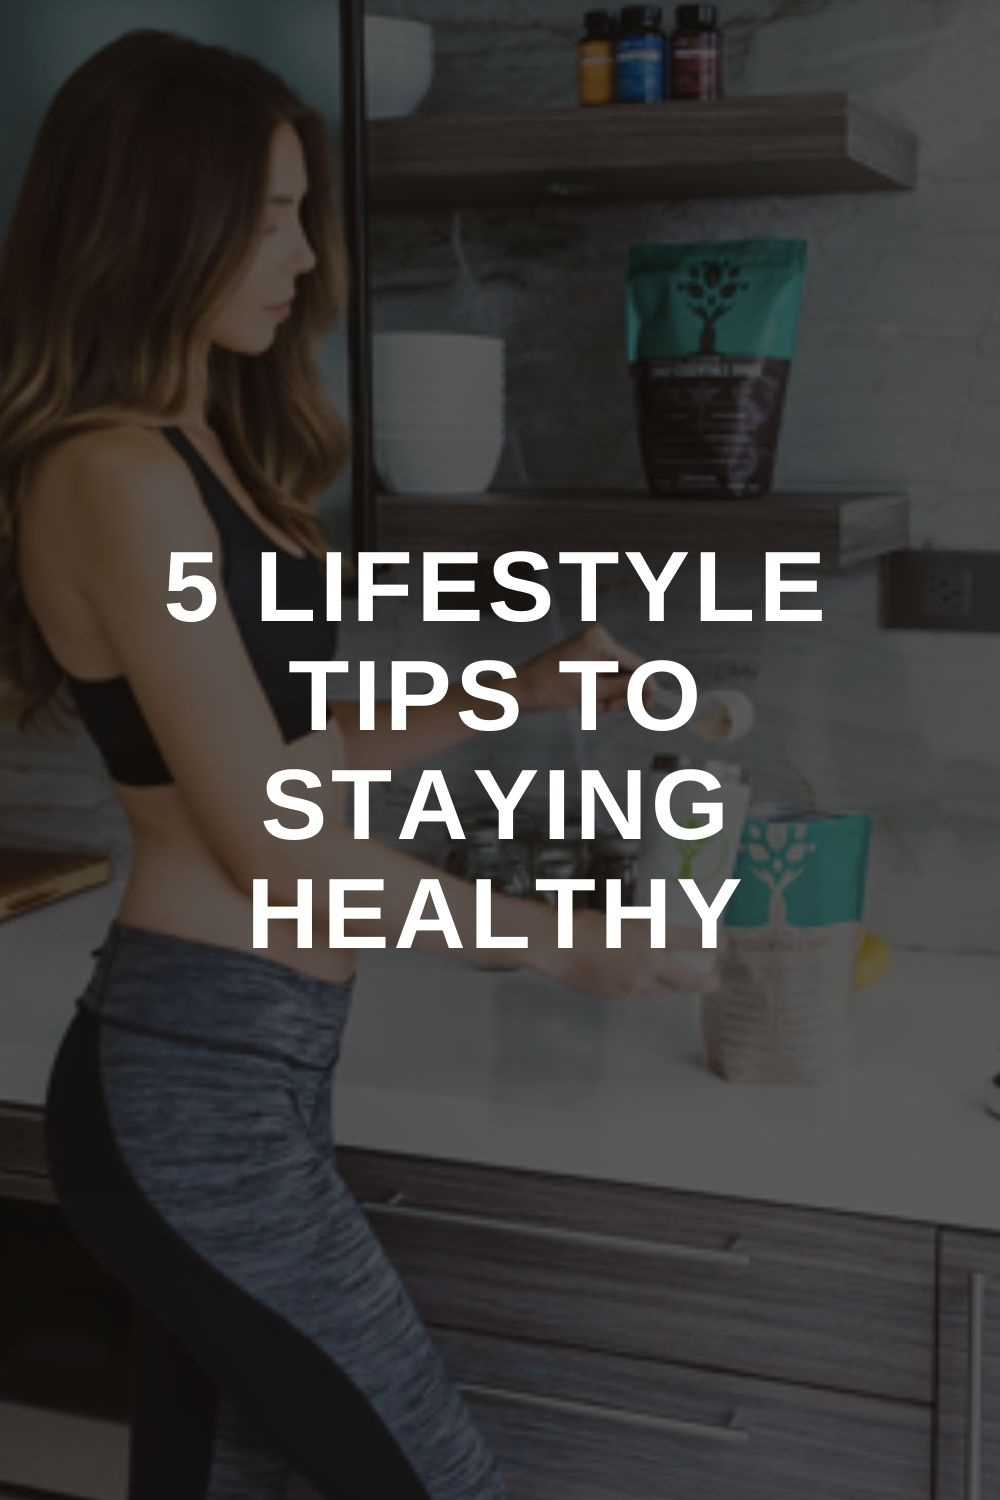 5 Lifestyle Tips to Staying Healthy